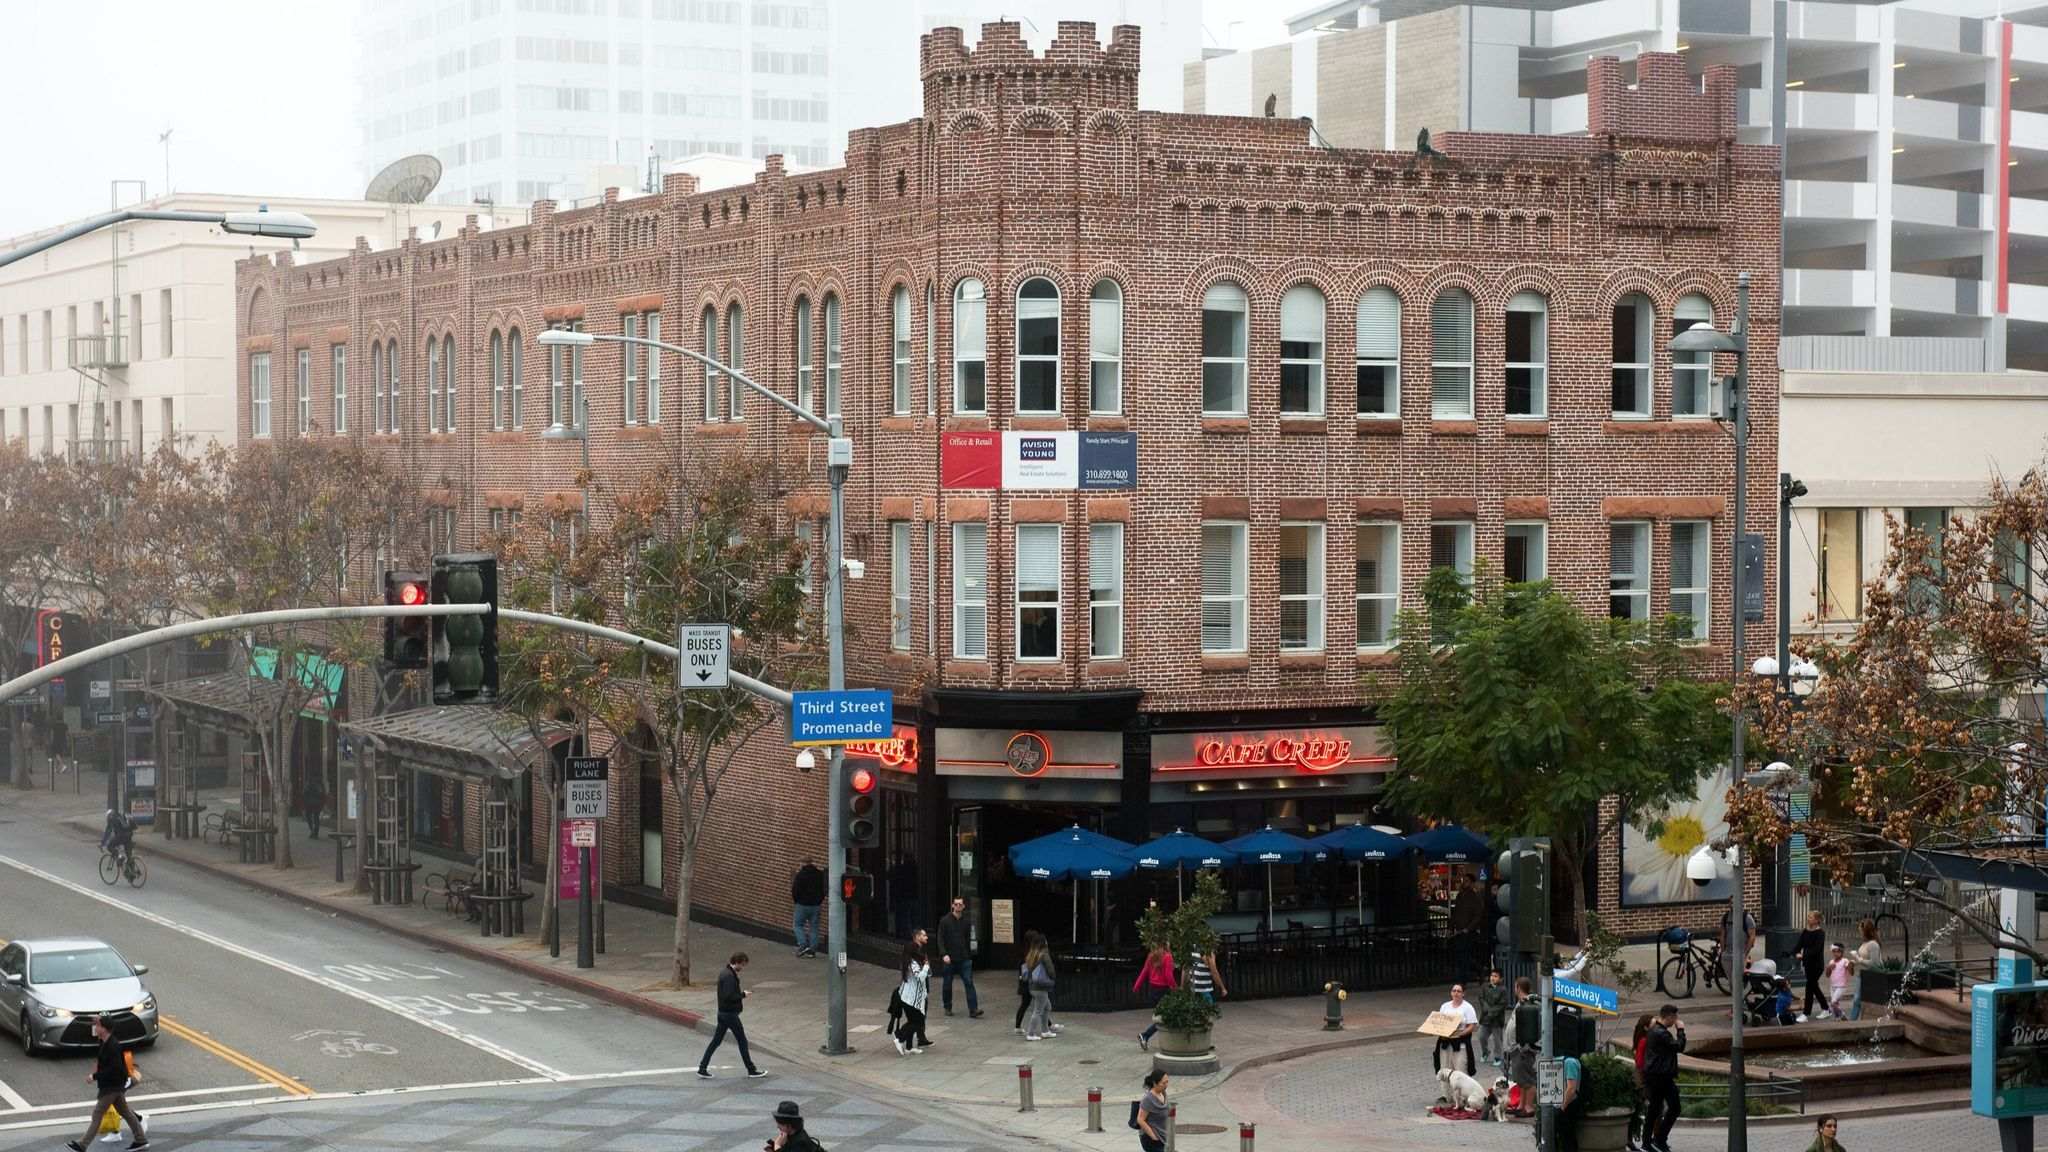 A three-story brick building could be required to undergo a seismic evaluation and retrofit, if necessary, if city leaders pass a new law. The city says there are 152 suspected unreinforced masonry buildings in Santa Monica.